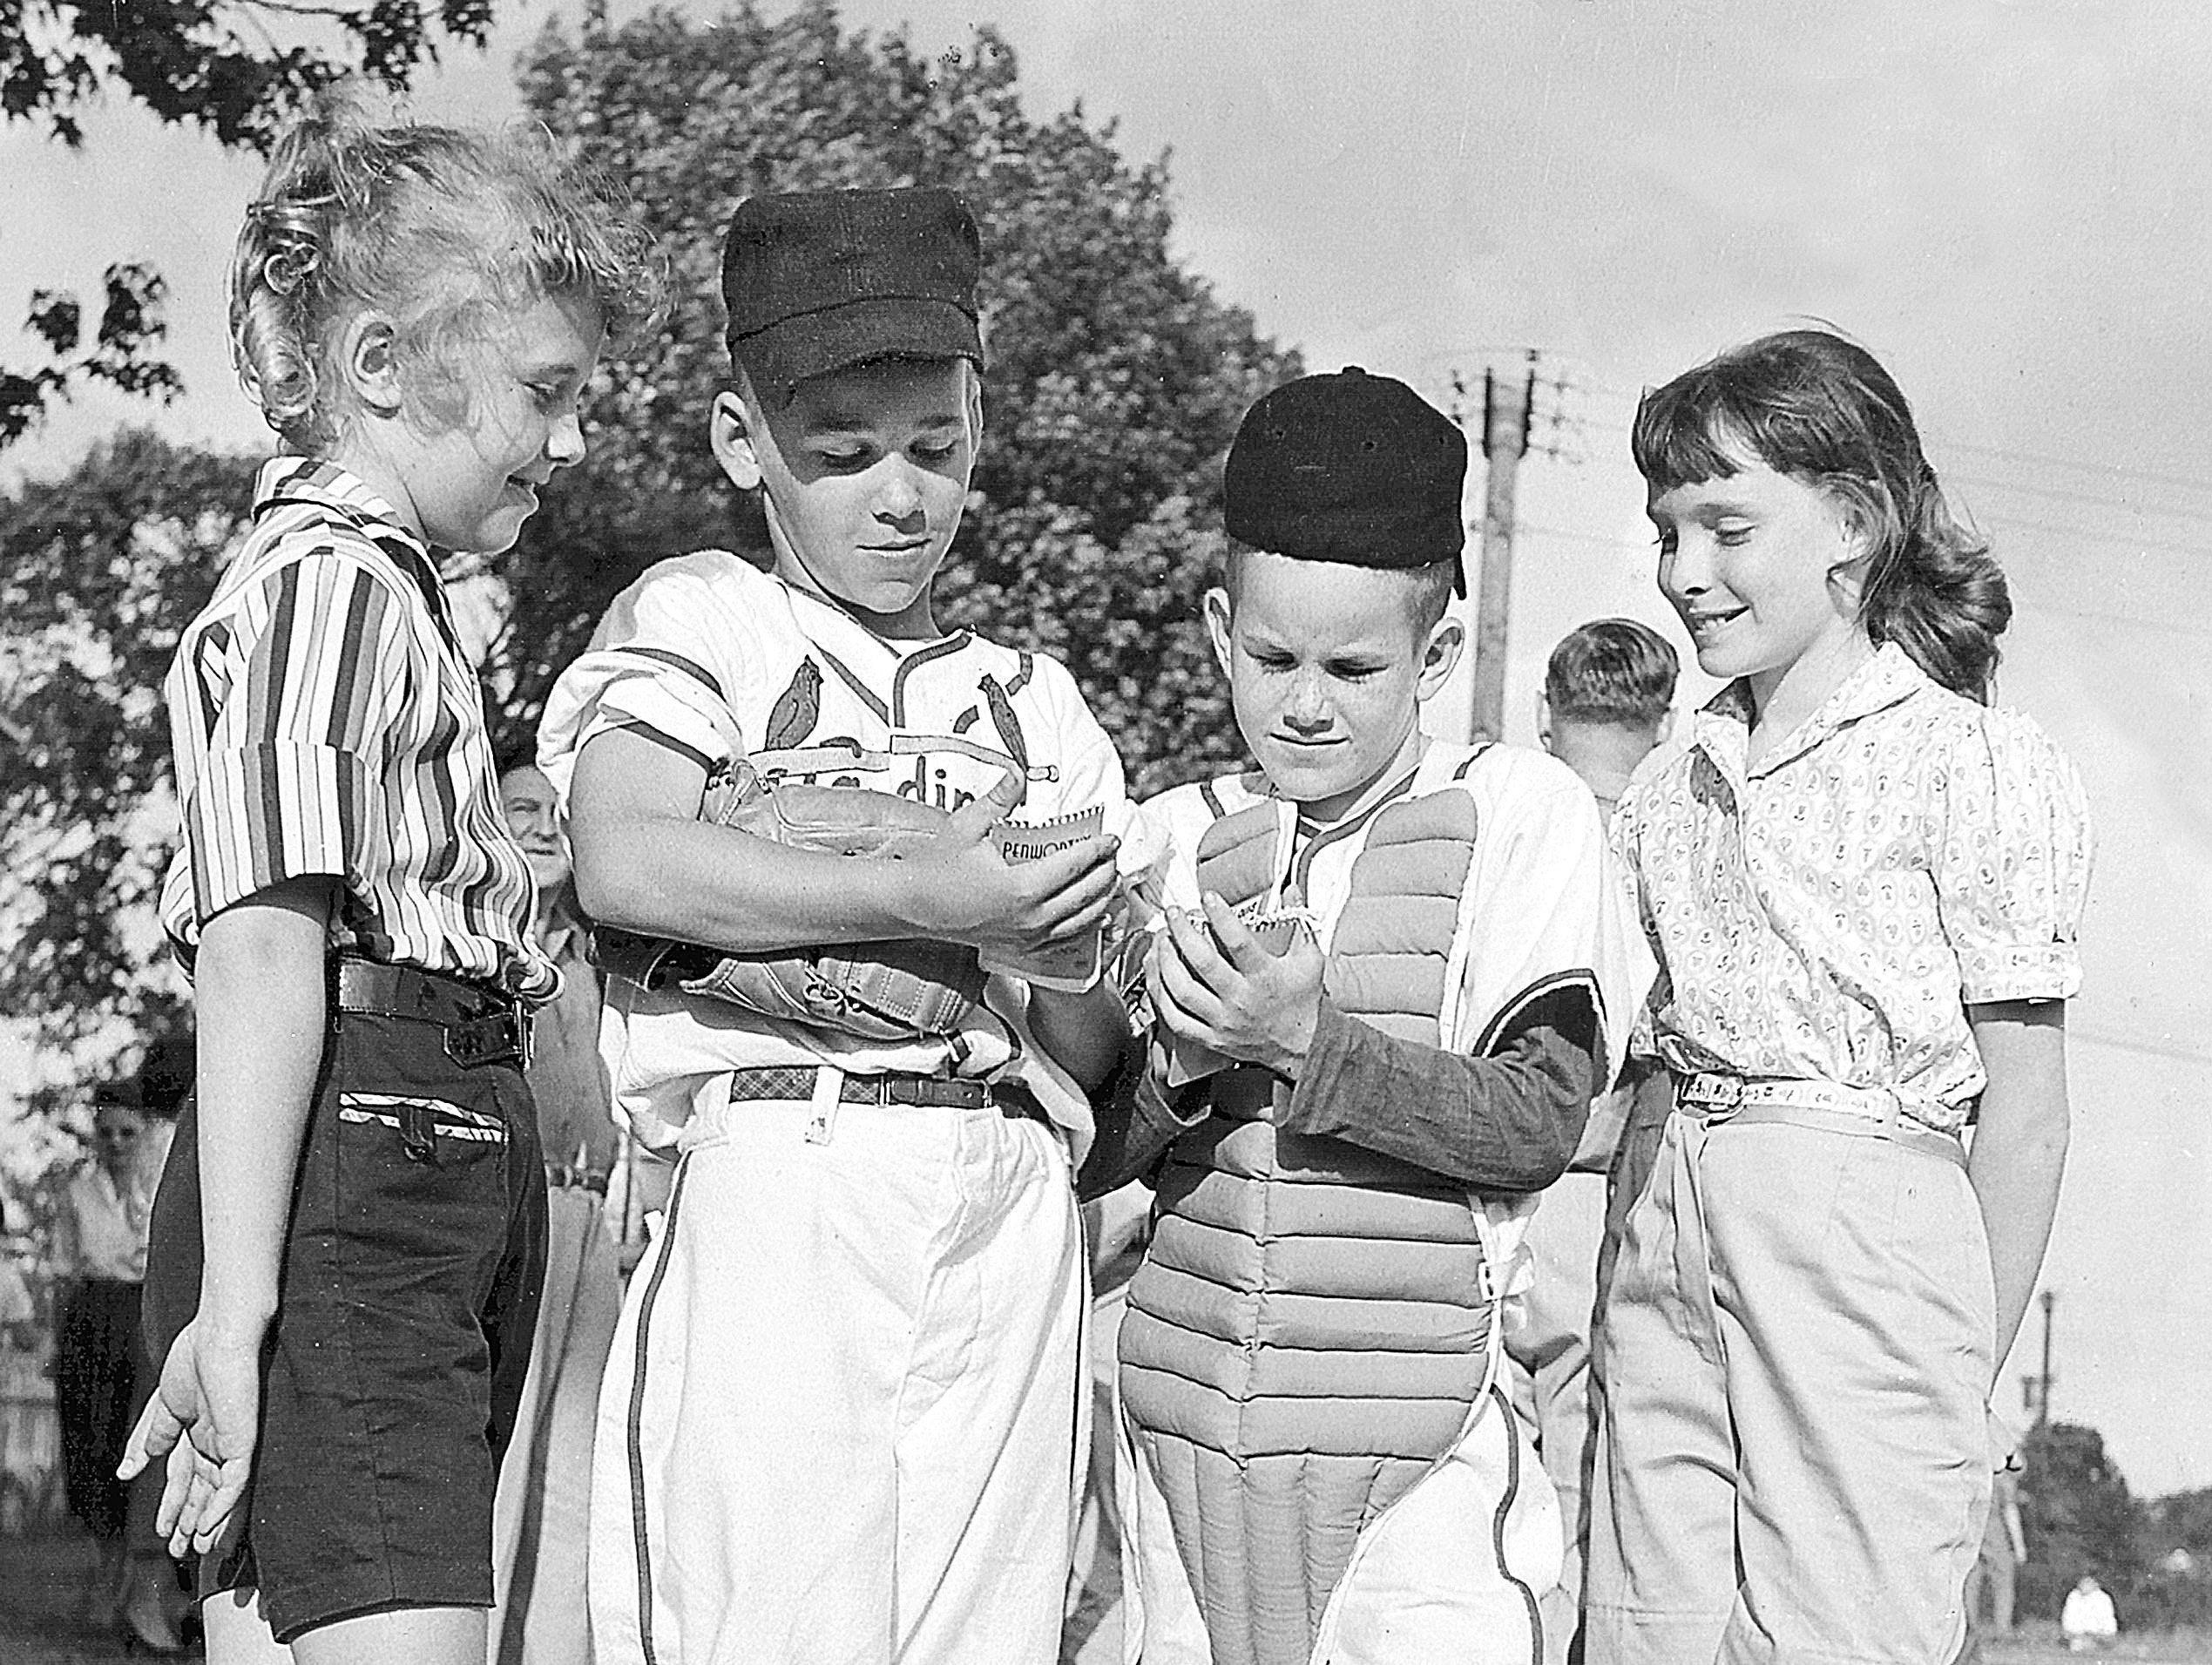 Hero worshiping fans get autographs from two stars on the St. Louis Pee Wee team in the Knights of Columbus League in the summer of 1958. At left, Lynn Zanone, 9, of 4972 Devonshire and Kris Mitchell, 11, of 4724 Barfield Road, right, found pitcher Jon Hardy, 10, of 5429 Shady Grove Terrace and catcher Dwight Morris, 9, of 5479 North Suggs ready to sign. St. Louis was preparing for a game with Immaculate Conception.